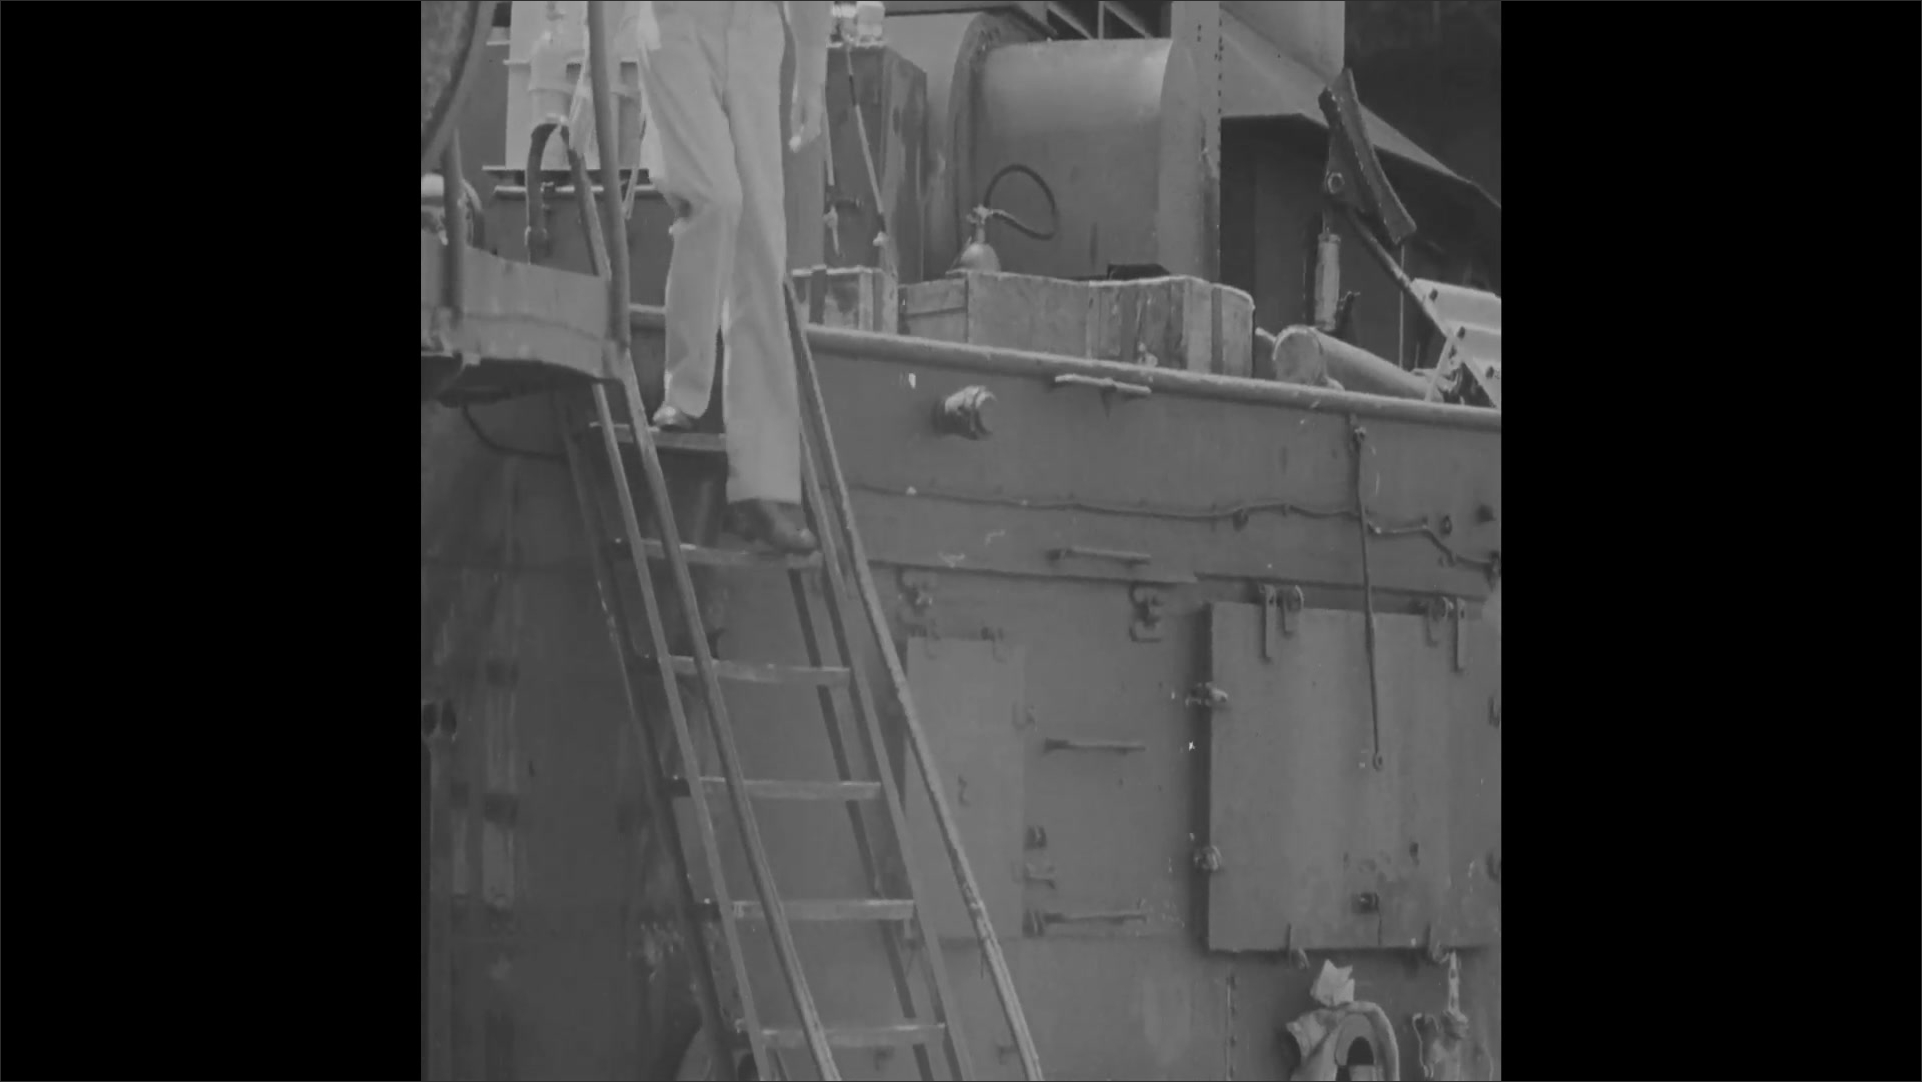 1940s: Sailors walk across deck of ship carrying duffle bags. Officer walks down steps and across deck.